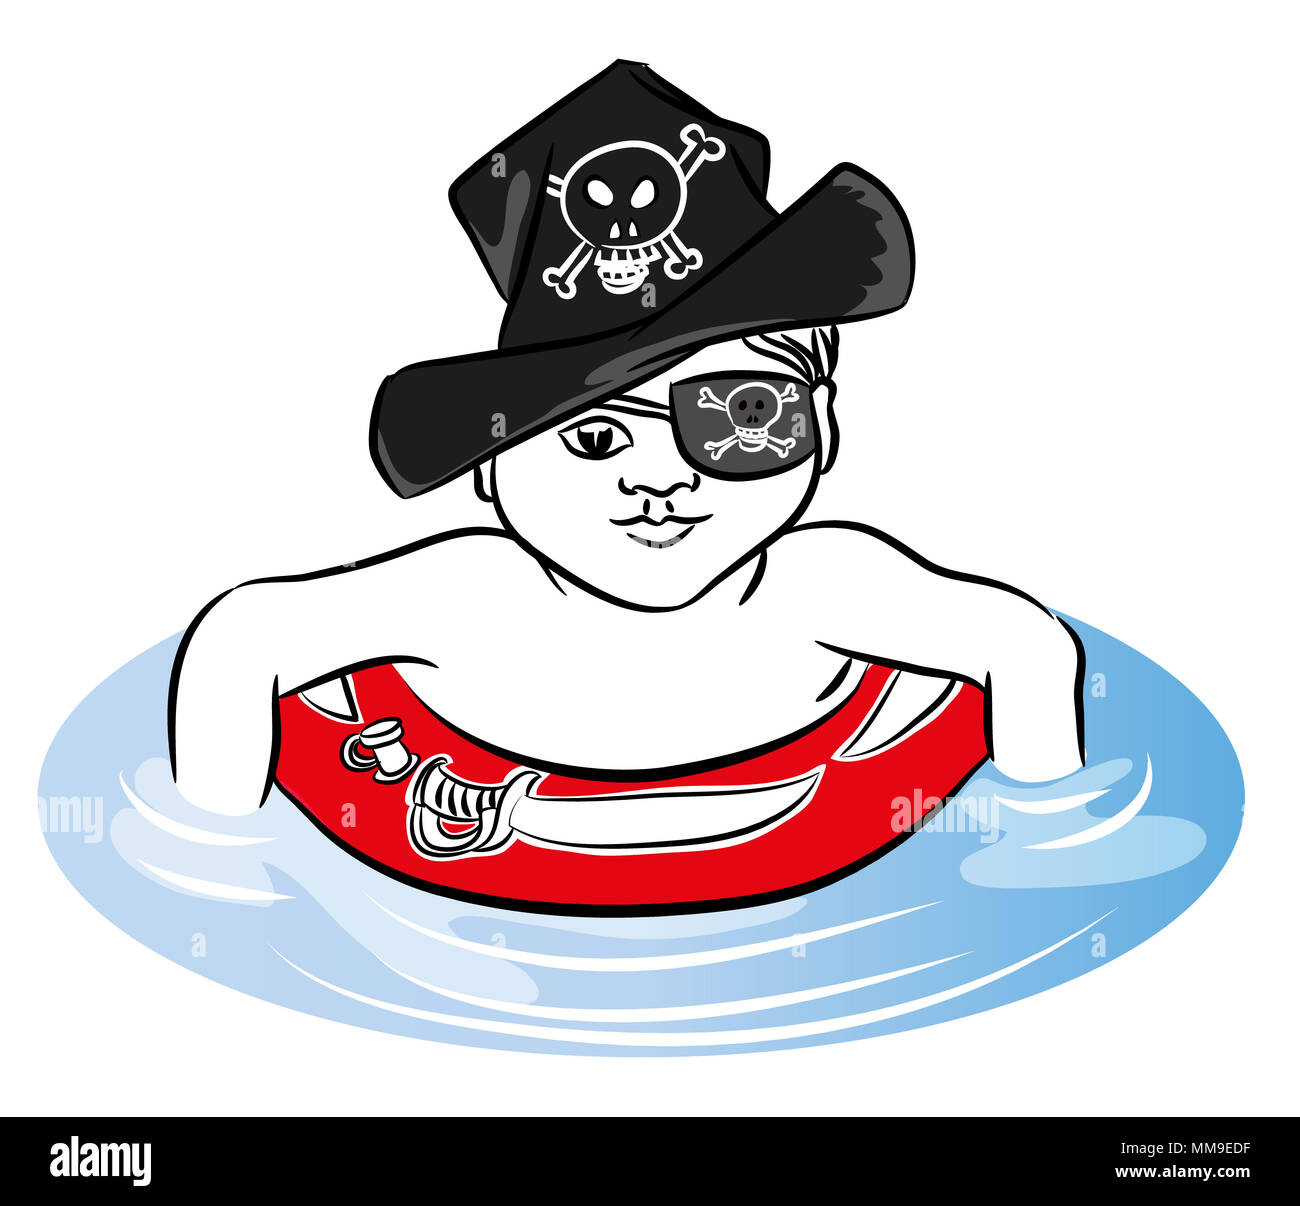 Pirate boy Pirate boy swimming with rubber ring in the sea. Pirate boy with rubber ring and hat.Stock Photo